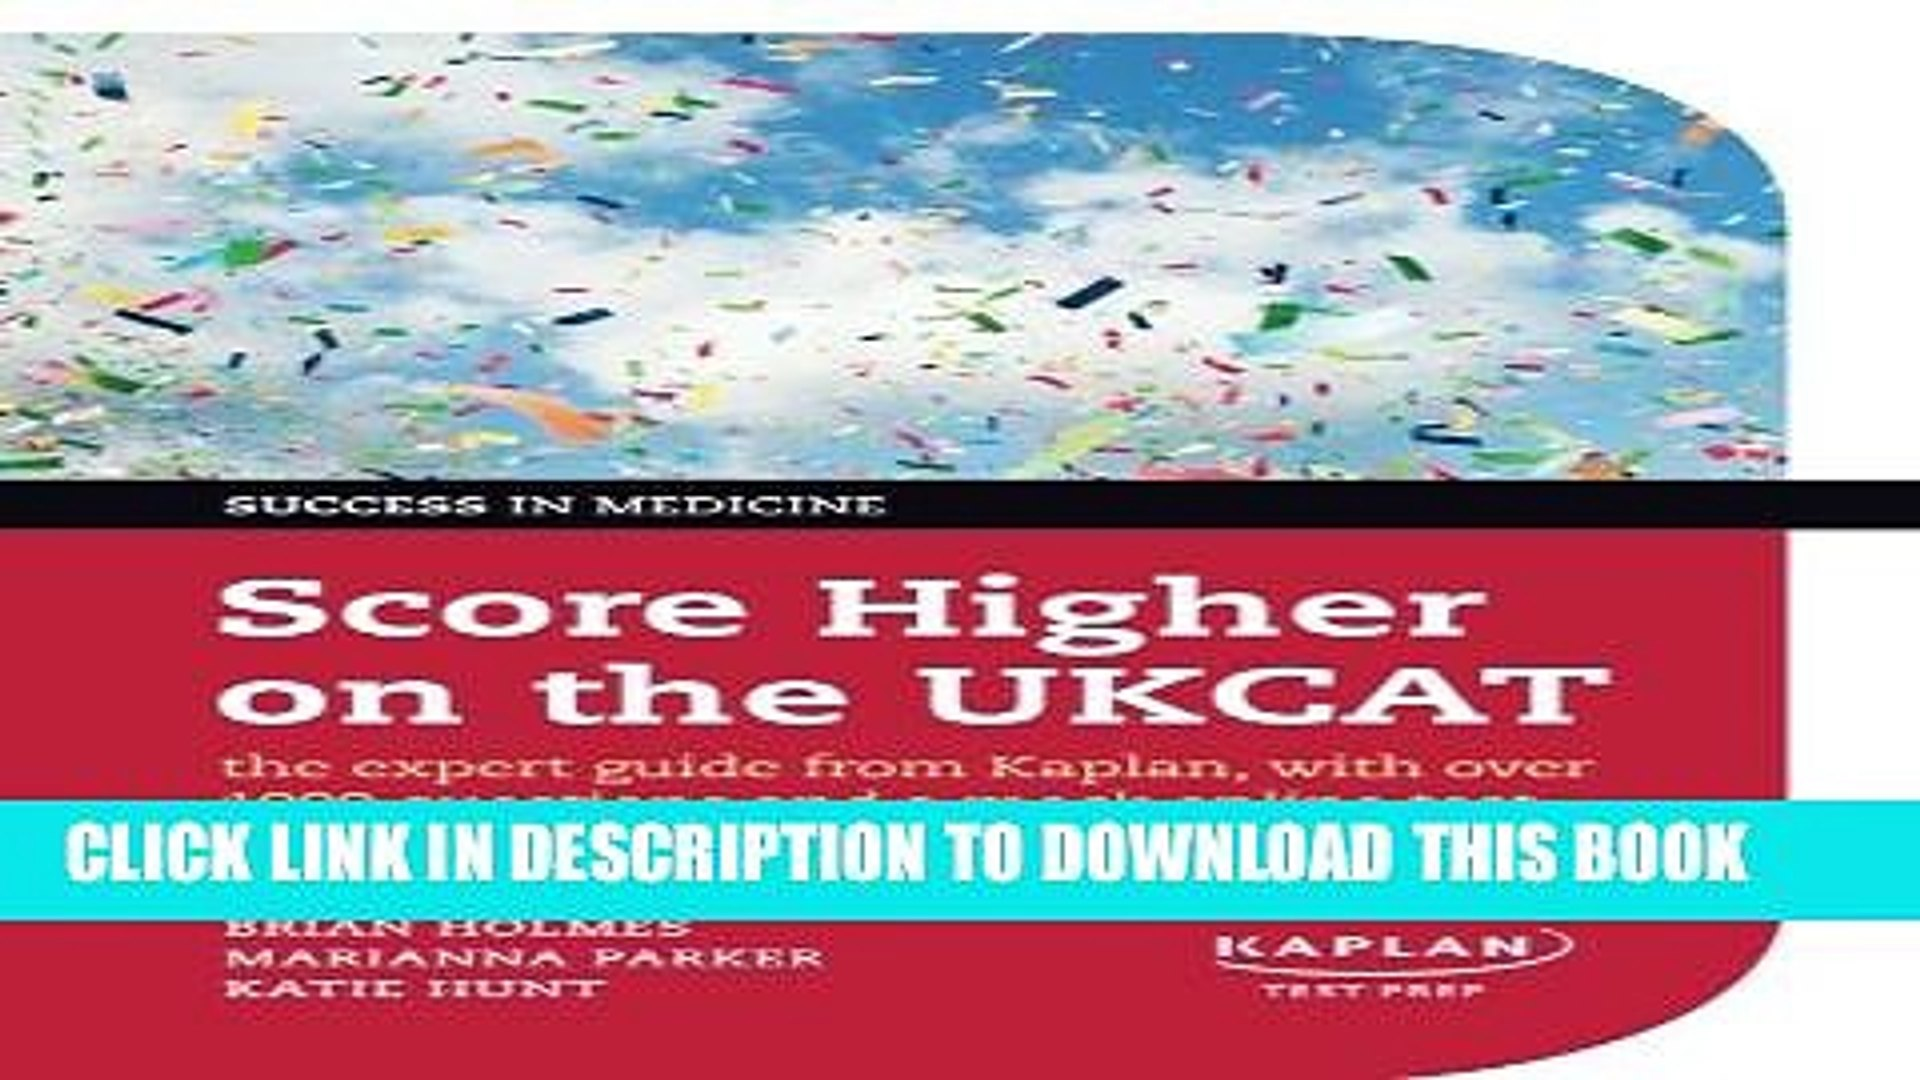 Collection Book Score Higher on the UKCAT: The expert guide from Kaplan,  with over 1000 questions